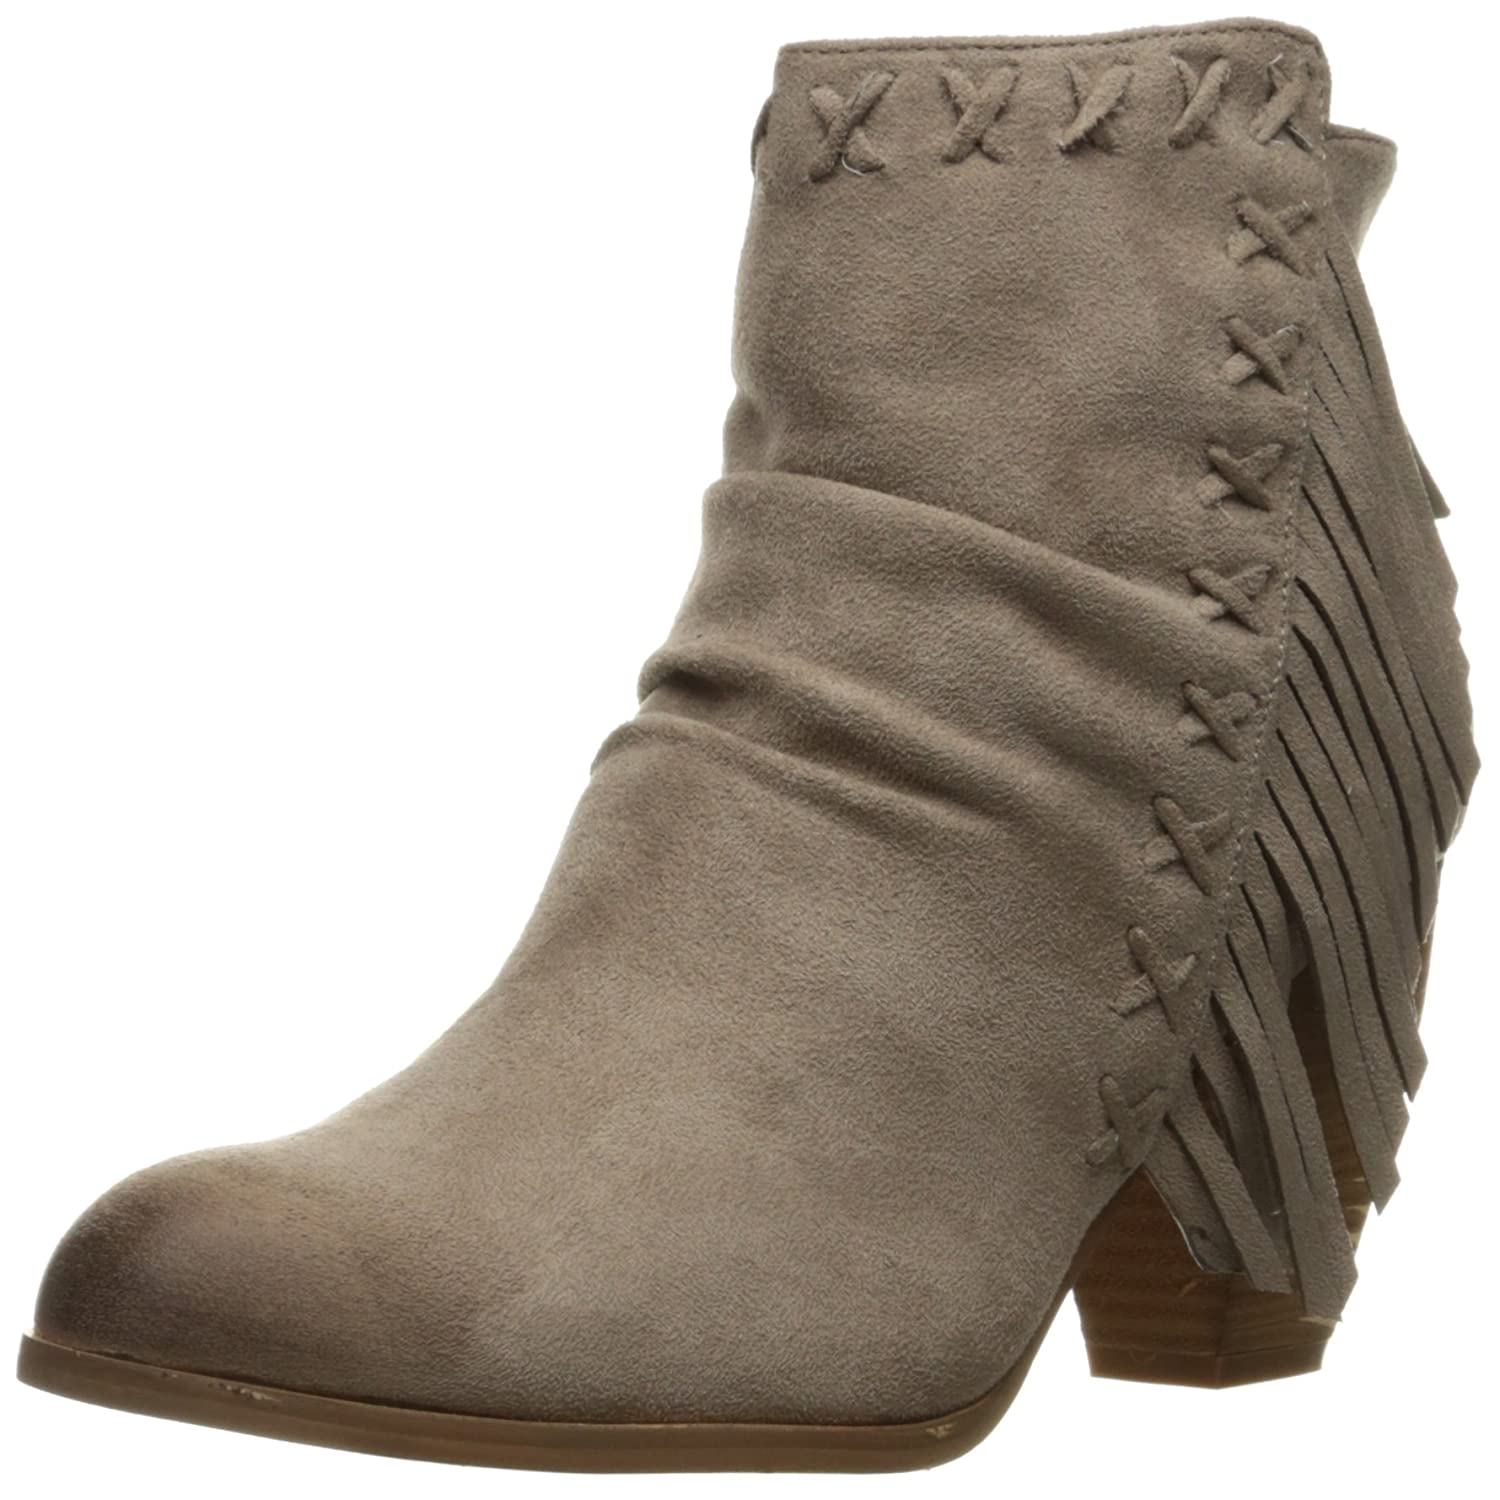 Not Rated Women's Angie Boot B01GKW13RA 8 B(M) US|Taupe